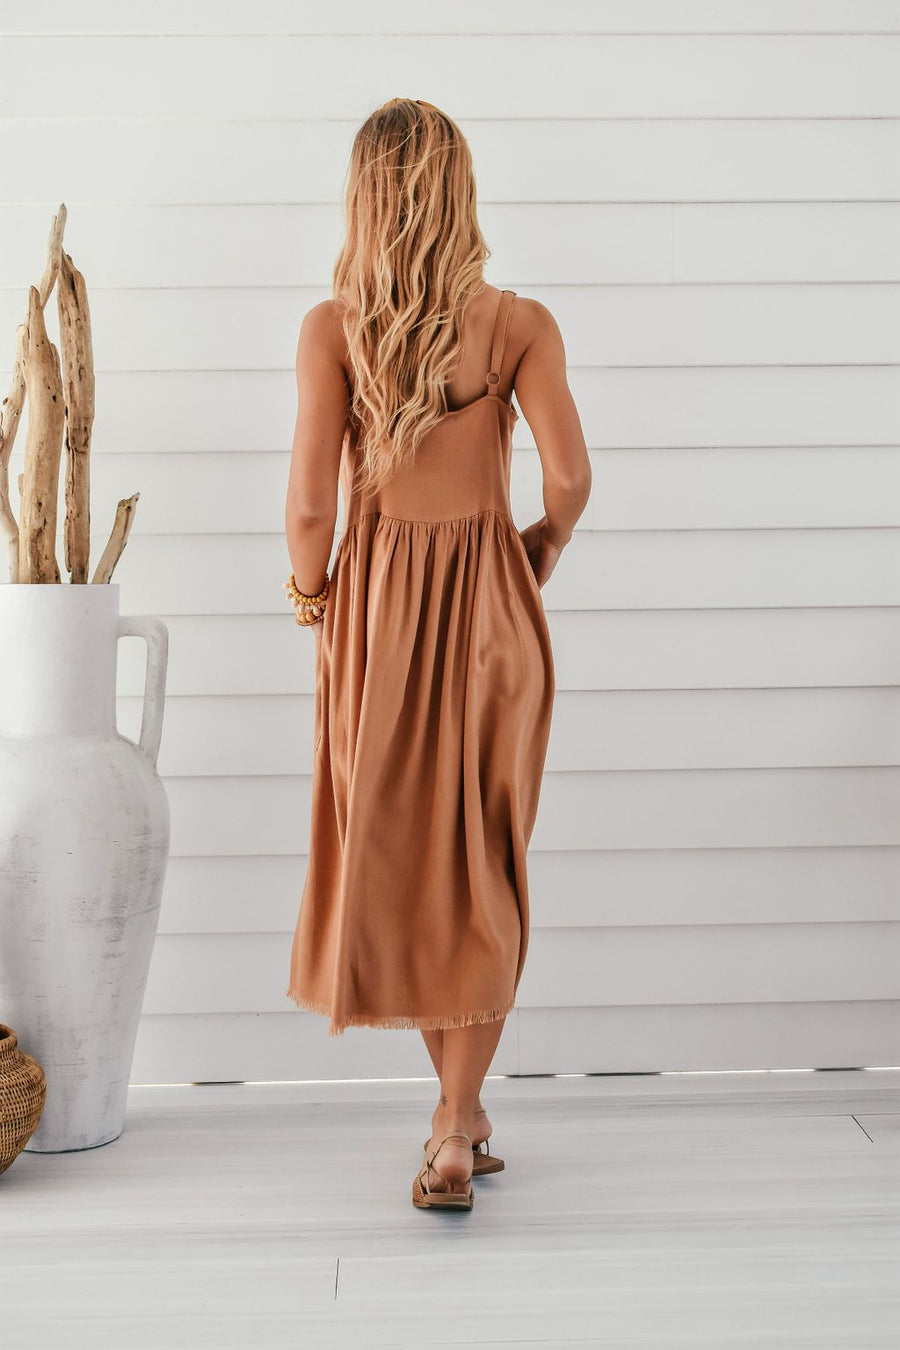 Arizona Linen Dress | Tan - Gray Label DRESS Gray Label